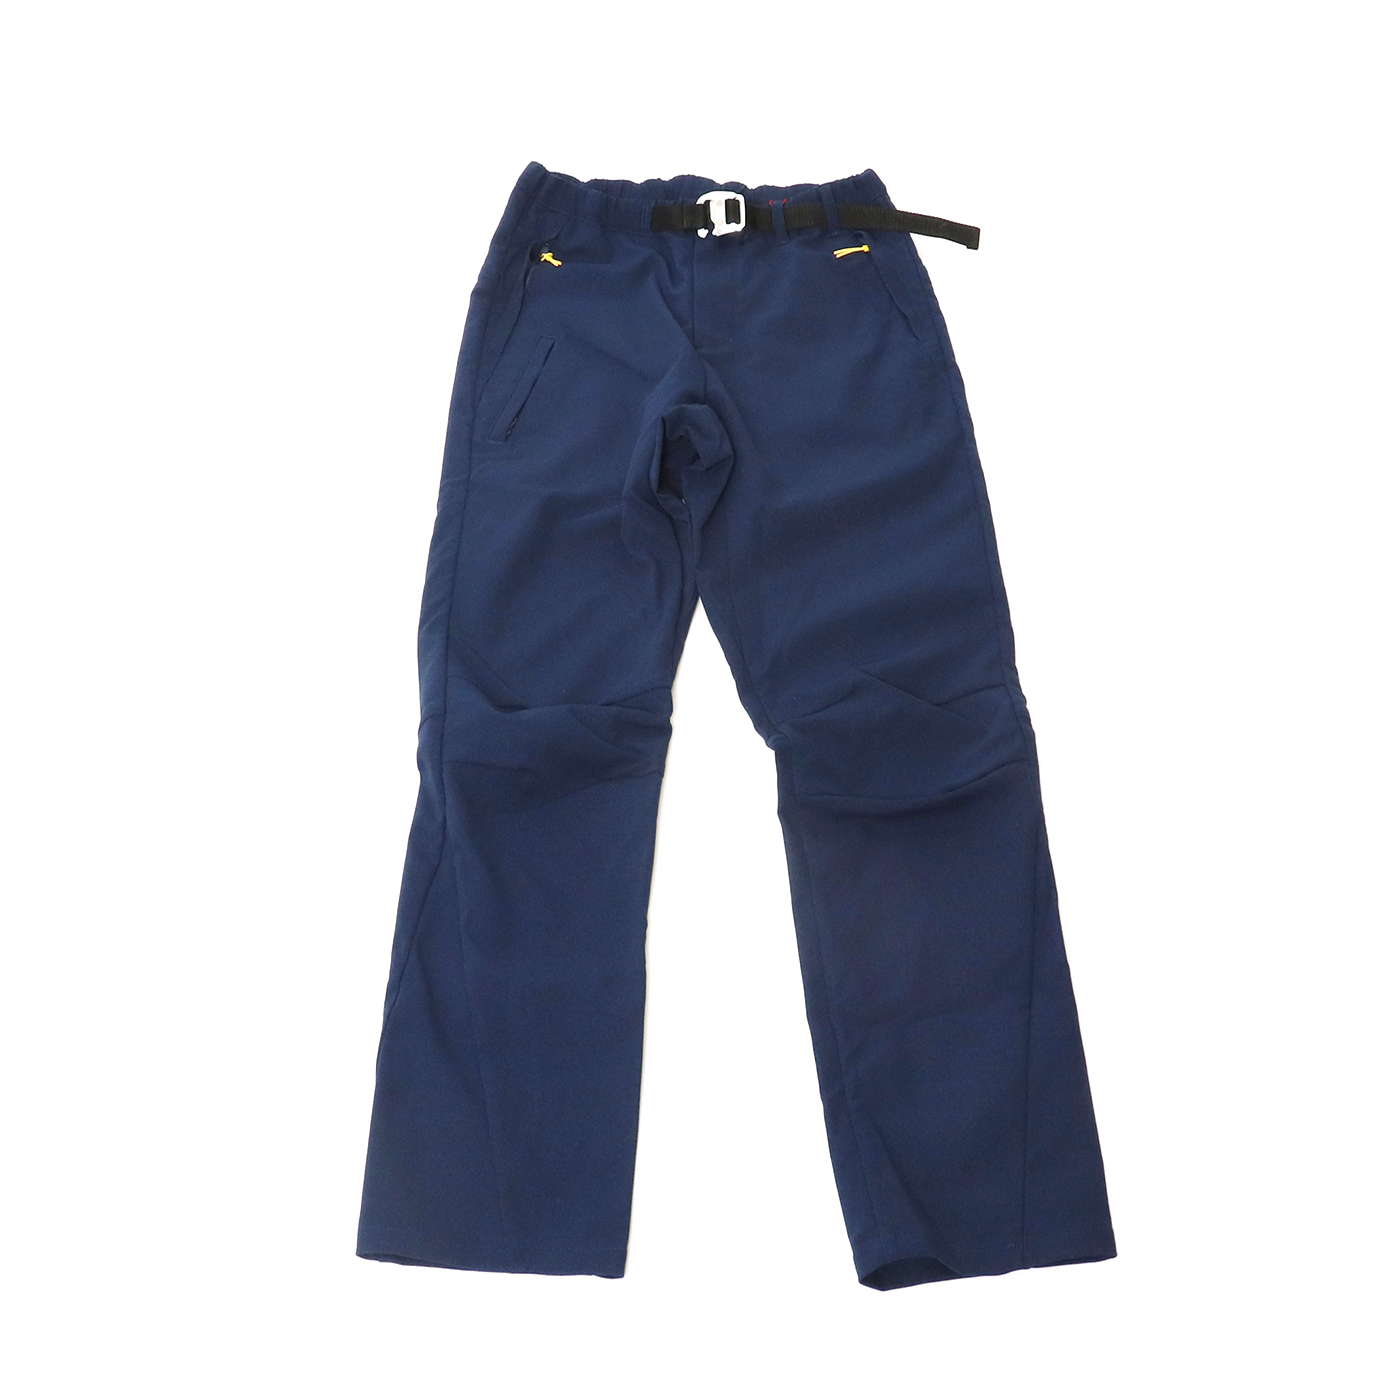 product: Alamosa / color: NAVY 1